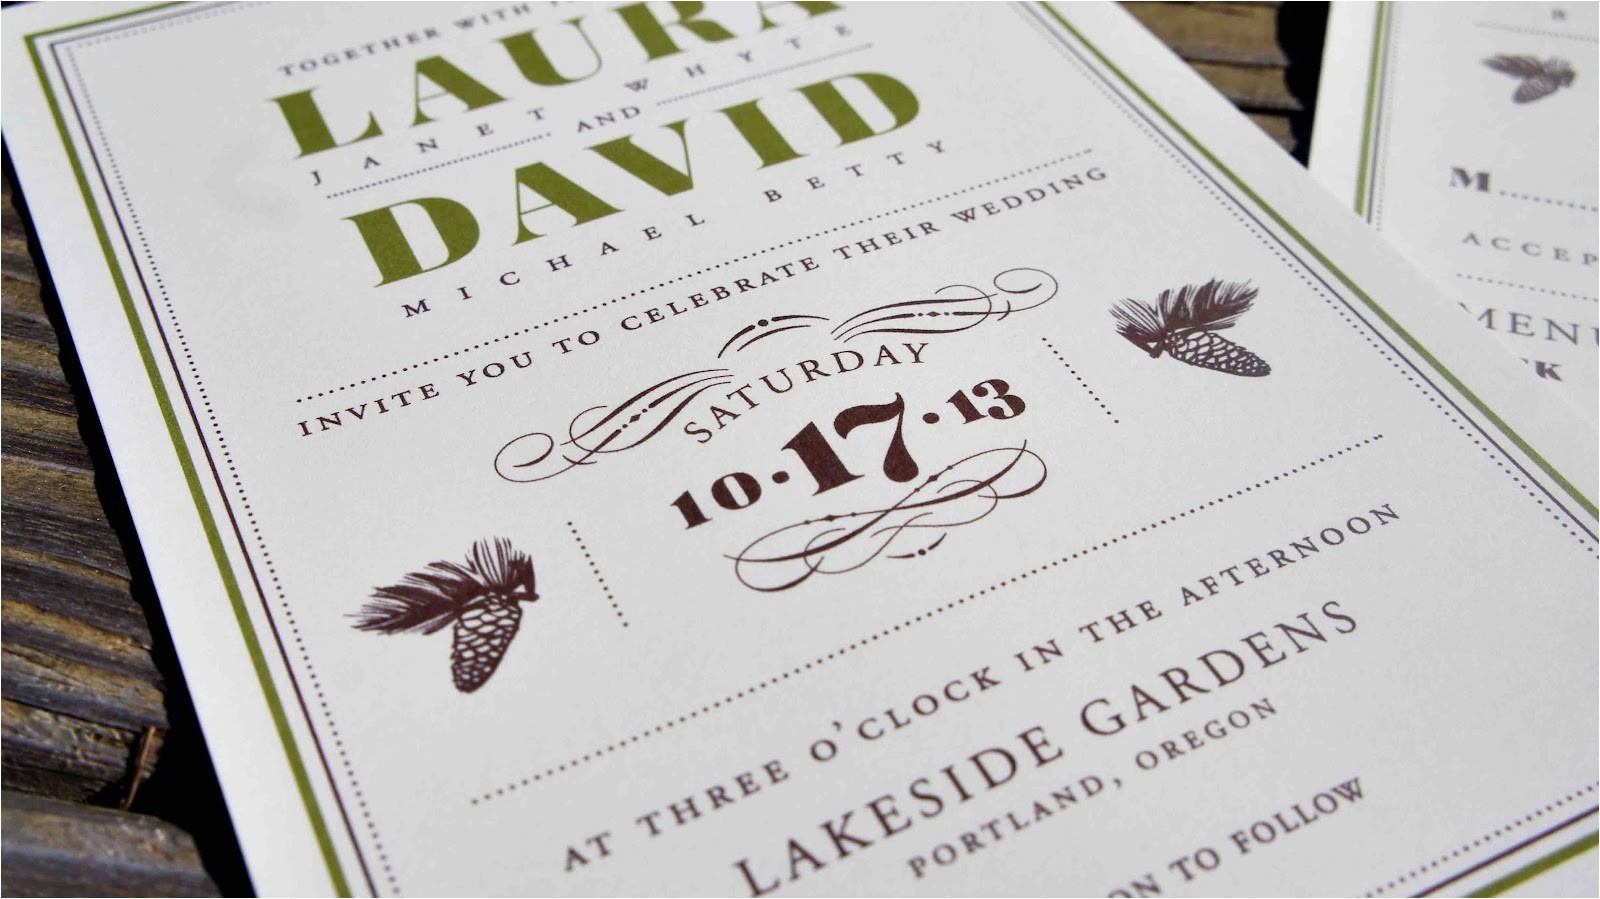 old school wedding invitation card template with plain white background color and black border color and brown font color